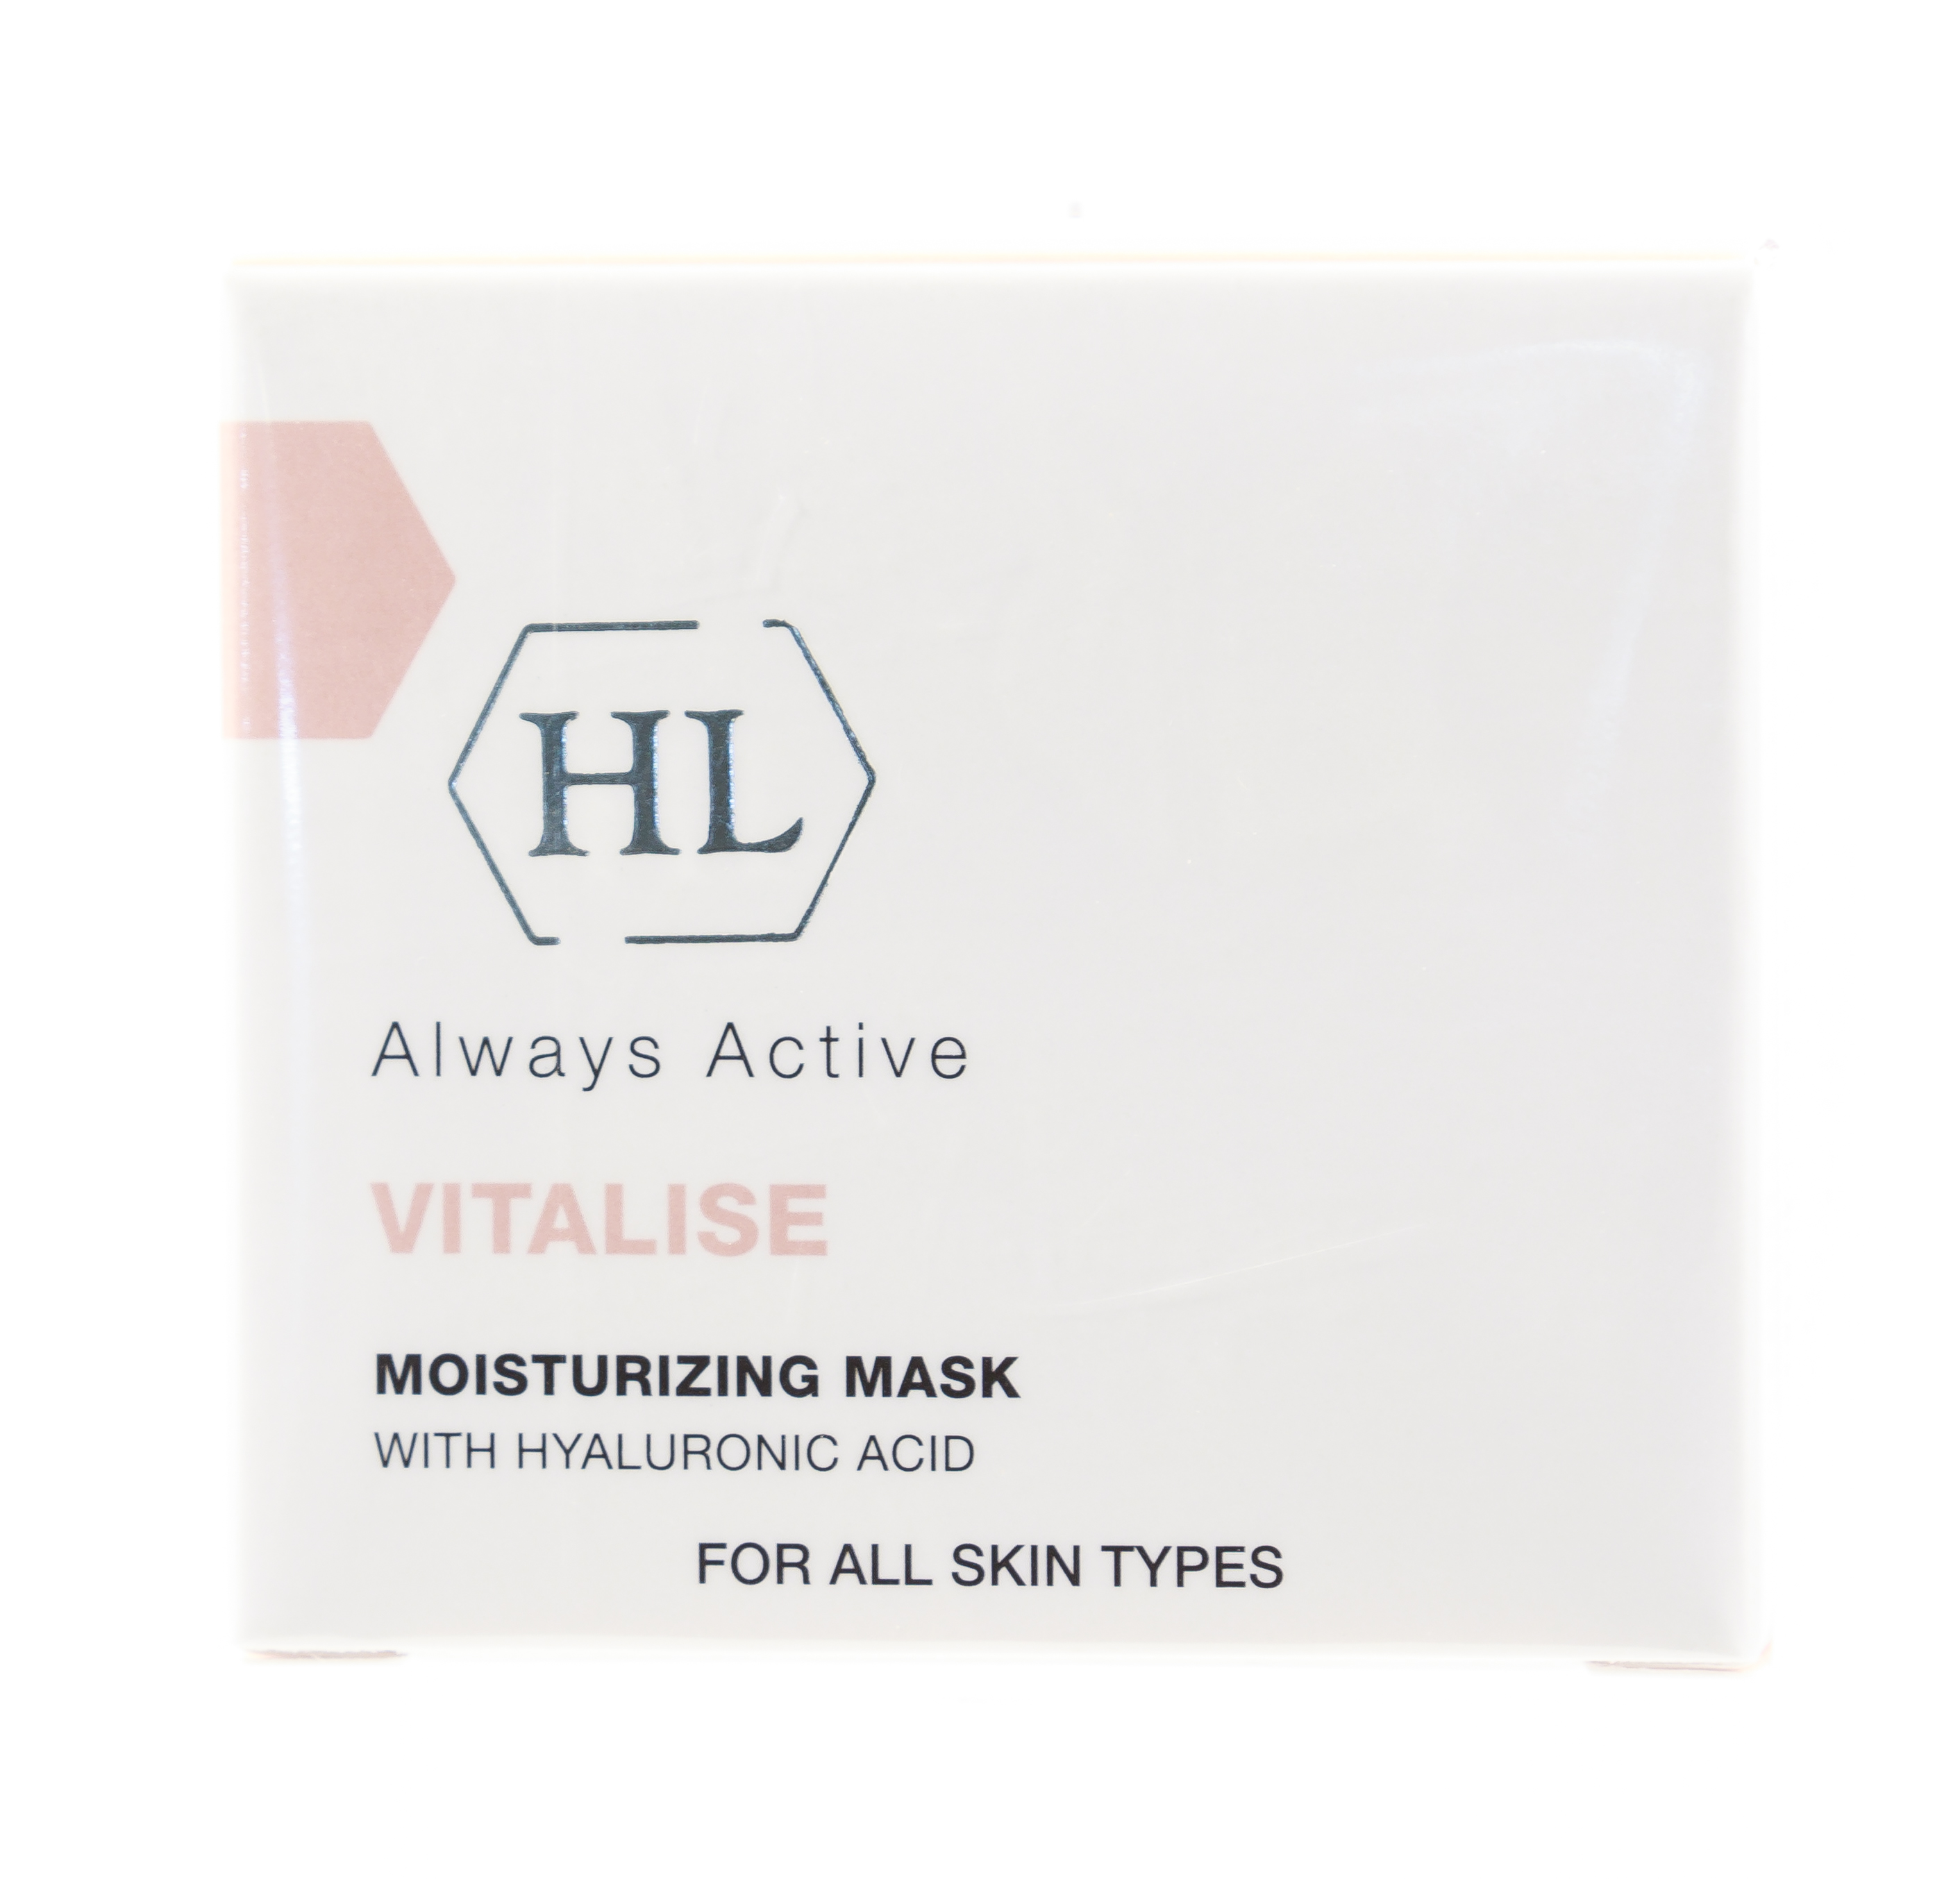 Холи Ленд Увлажняющая маска Vitalise Moisturizing Mask, 50 мл (Holyland Laboratories, Vitalise) фото 1